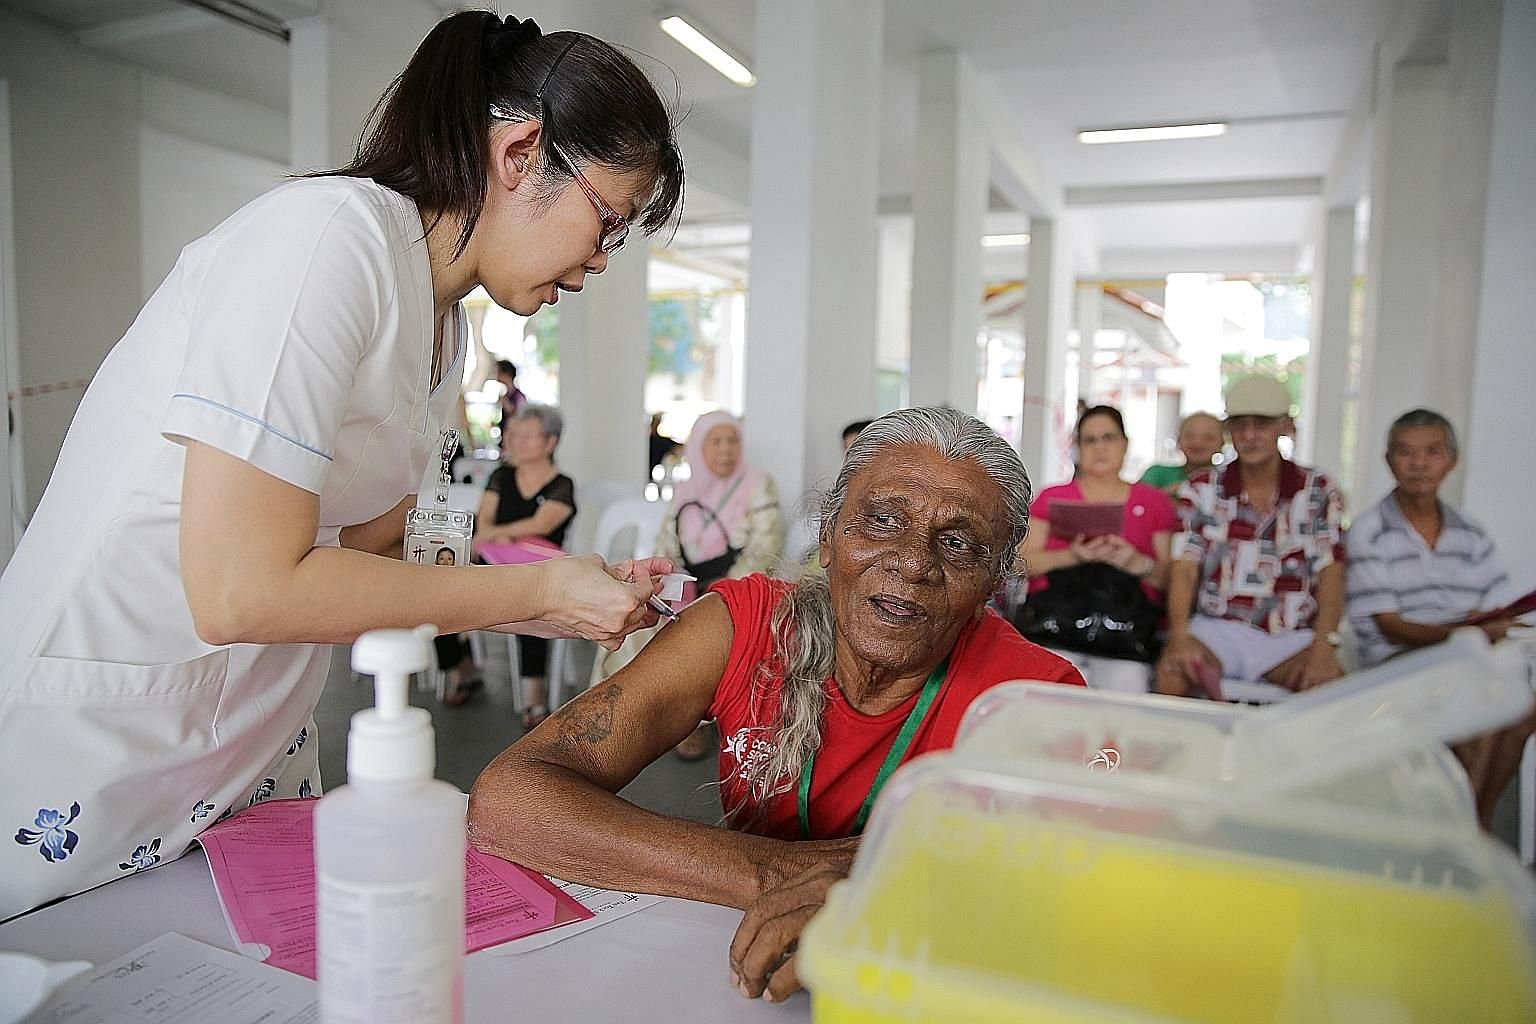 A vaccination session by Tan Tock Seng Hospital in 2015. The flu jab study, by the National Centre for Infectious Diseases and Tan Tock Seng Hospital, had 200 participants aged 65 and up. Its findings could help determine how often people here should